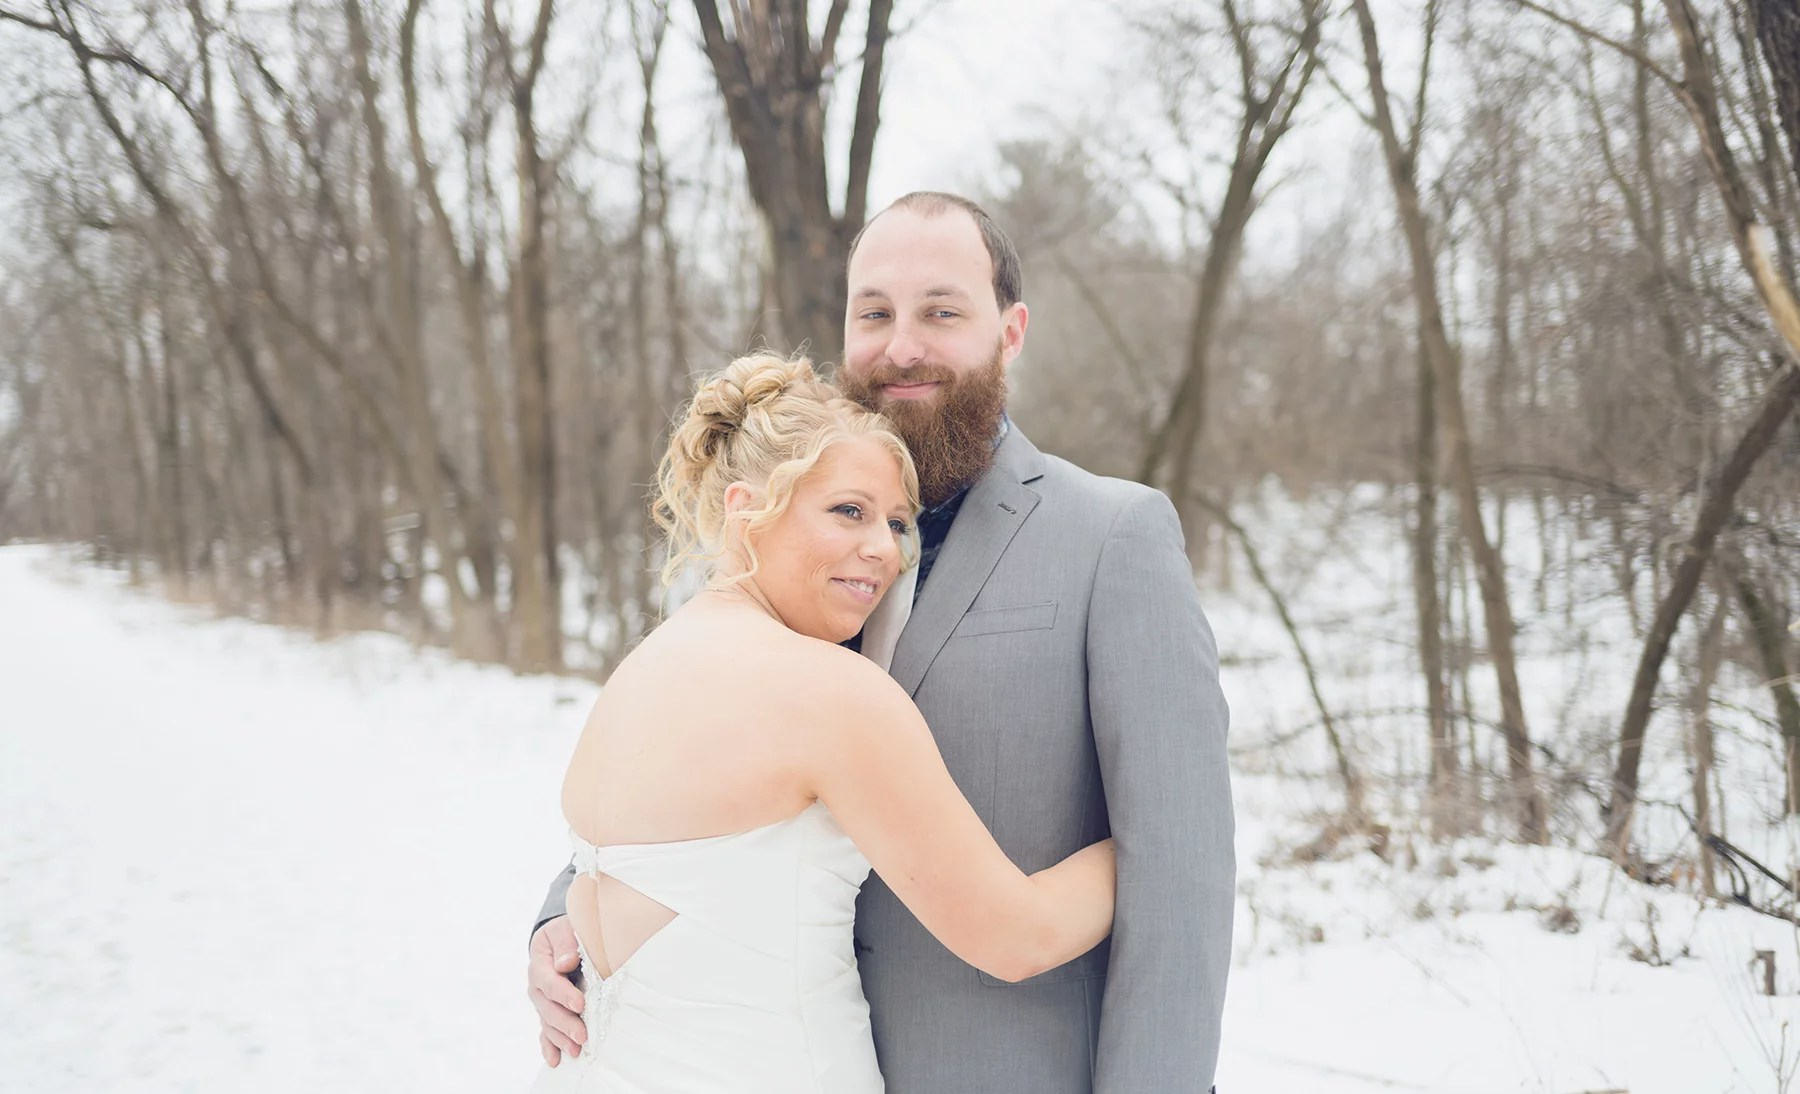 winter wedding with snow in st paul minnesota